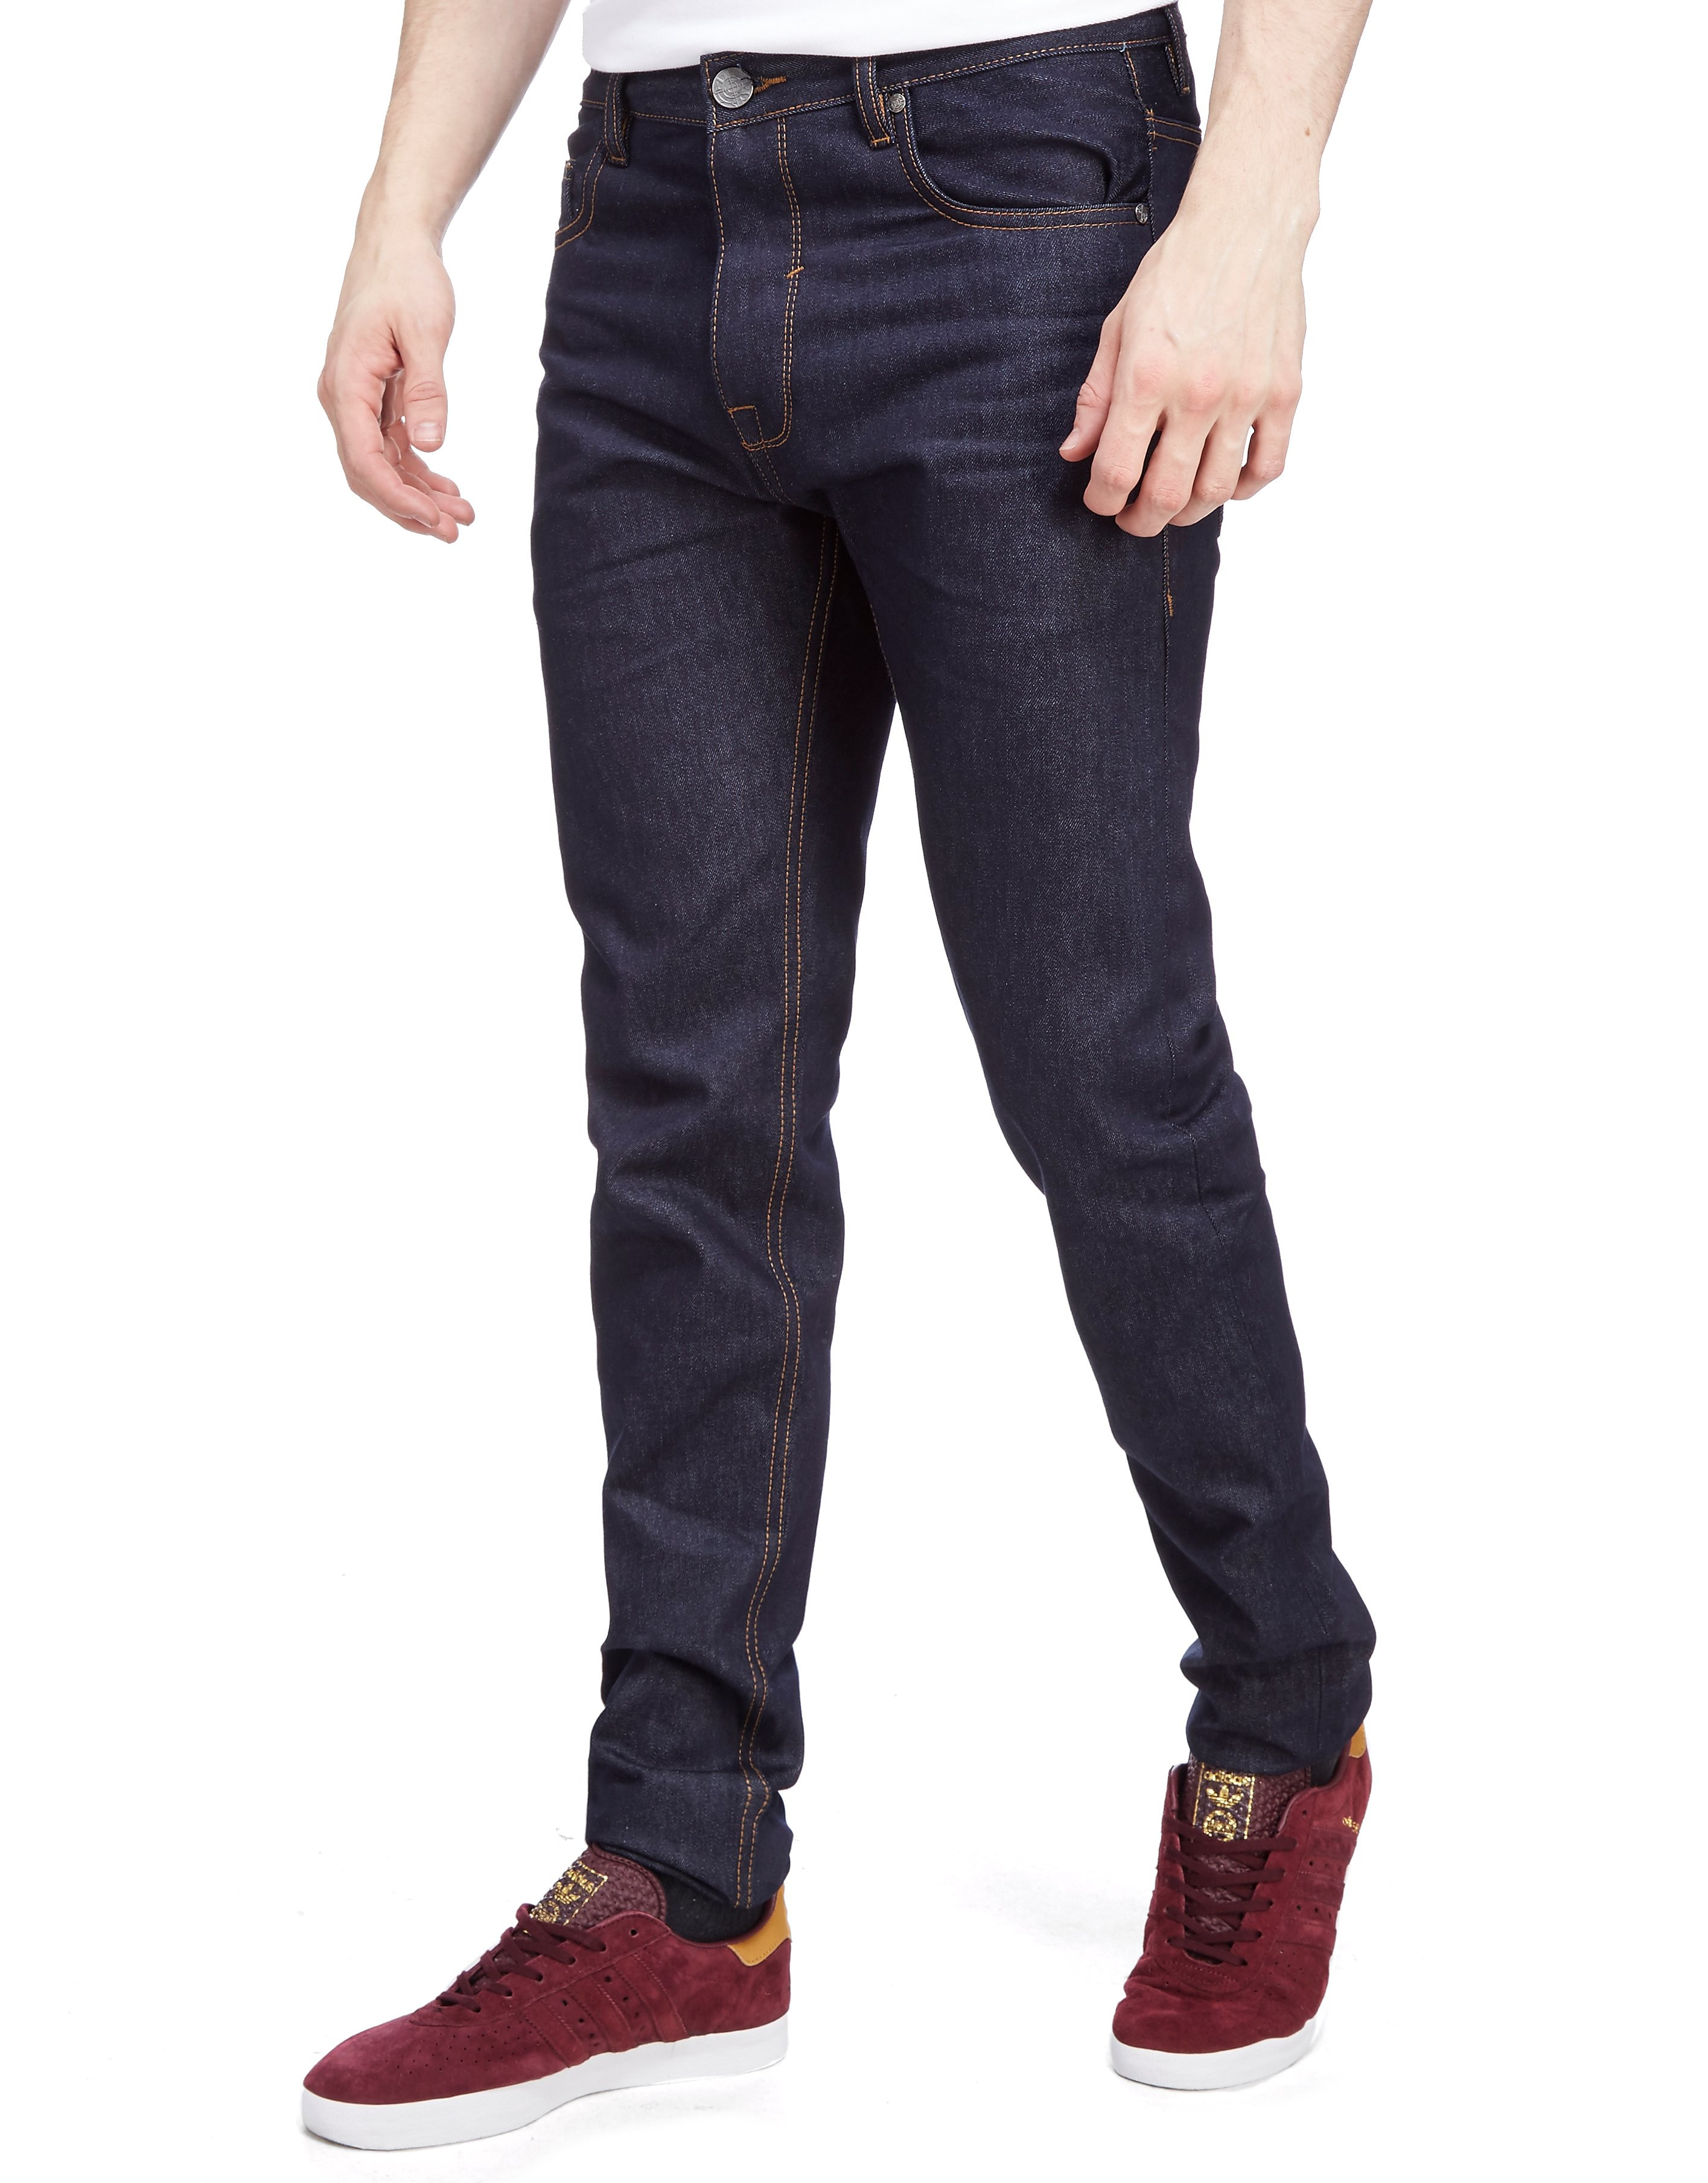 Nanny State Leo Tapered Jeans